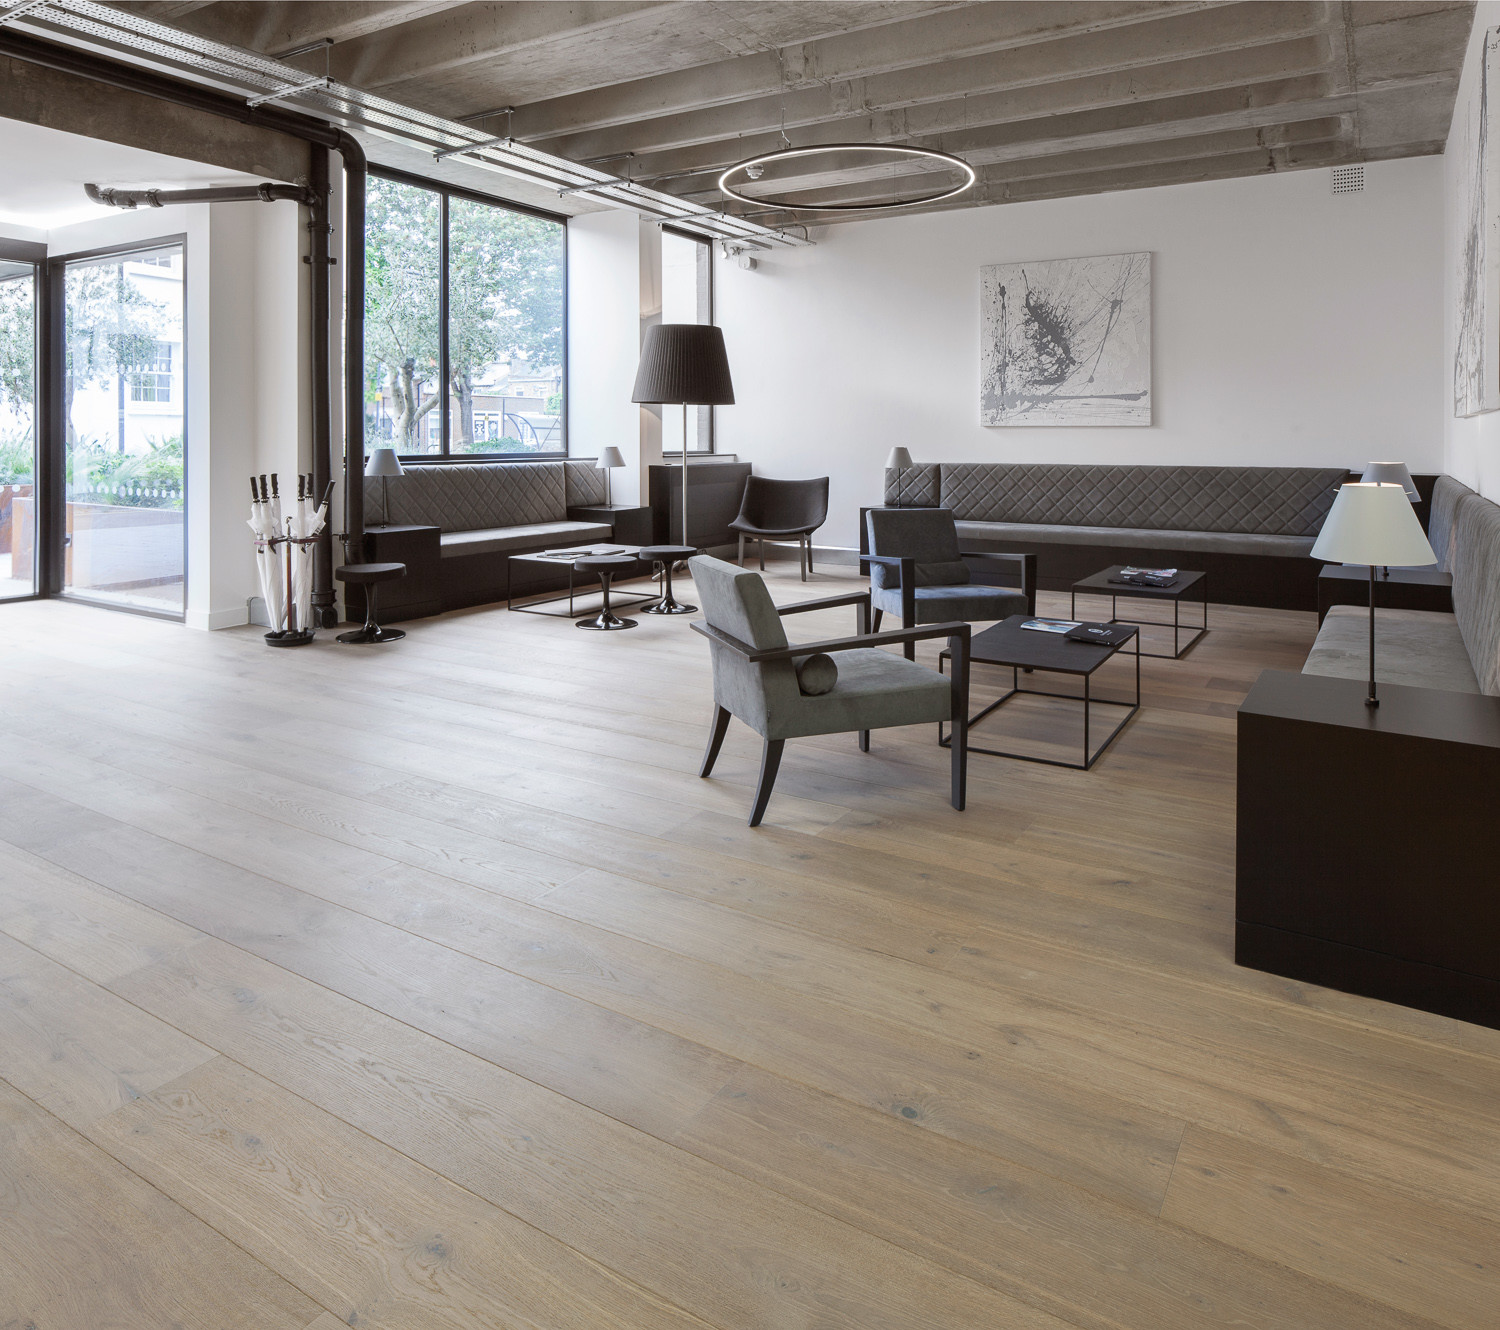 hardwood floor underlayment necessary of blog archives the new reclaimed flooring companythe new with regard to the report indicated that 82 of workers who were employed in places with eight or more wood surfaces had higher personal productivity mood concentration